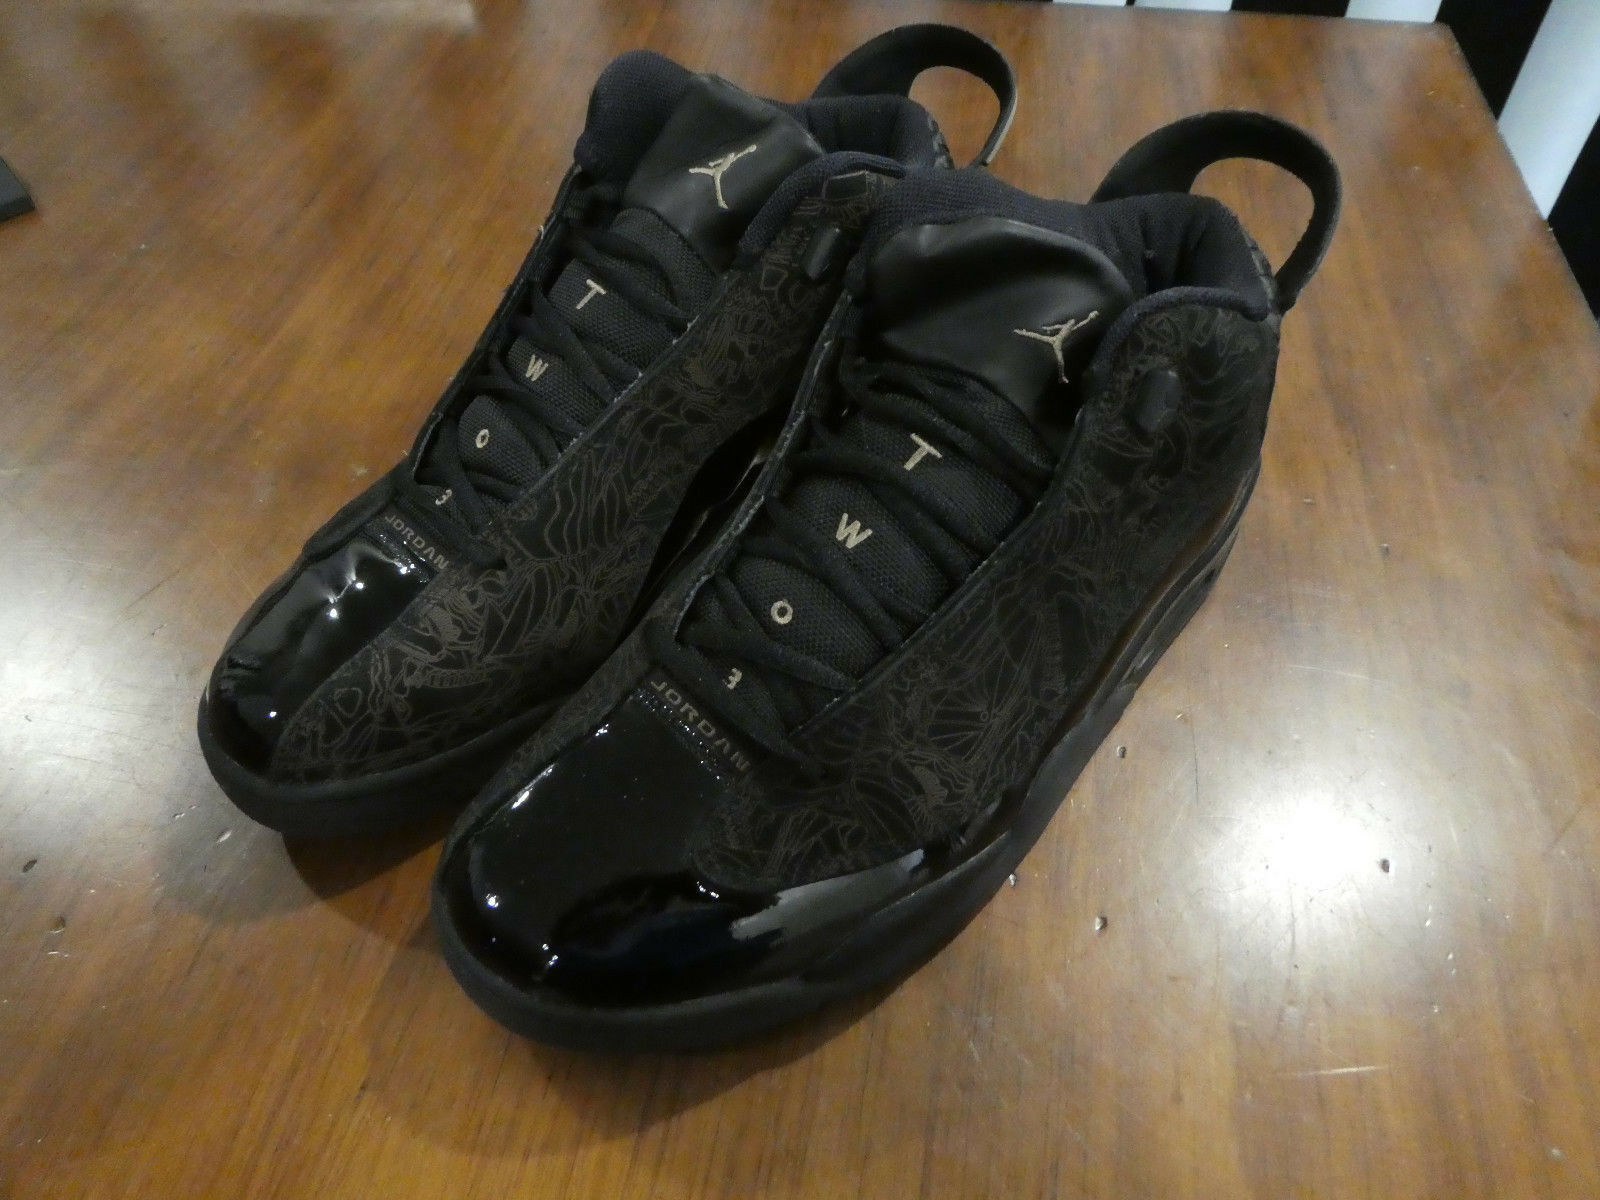 Nike Air Jordan Dub Zero mens shoes 311046 001 used size 12 black Seasonal clearance sale